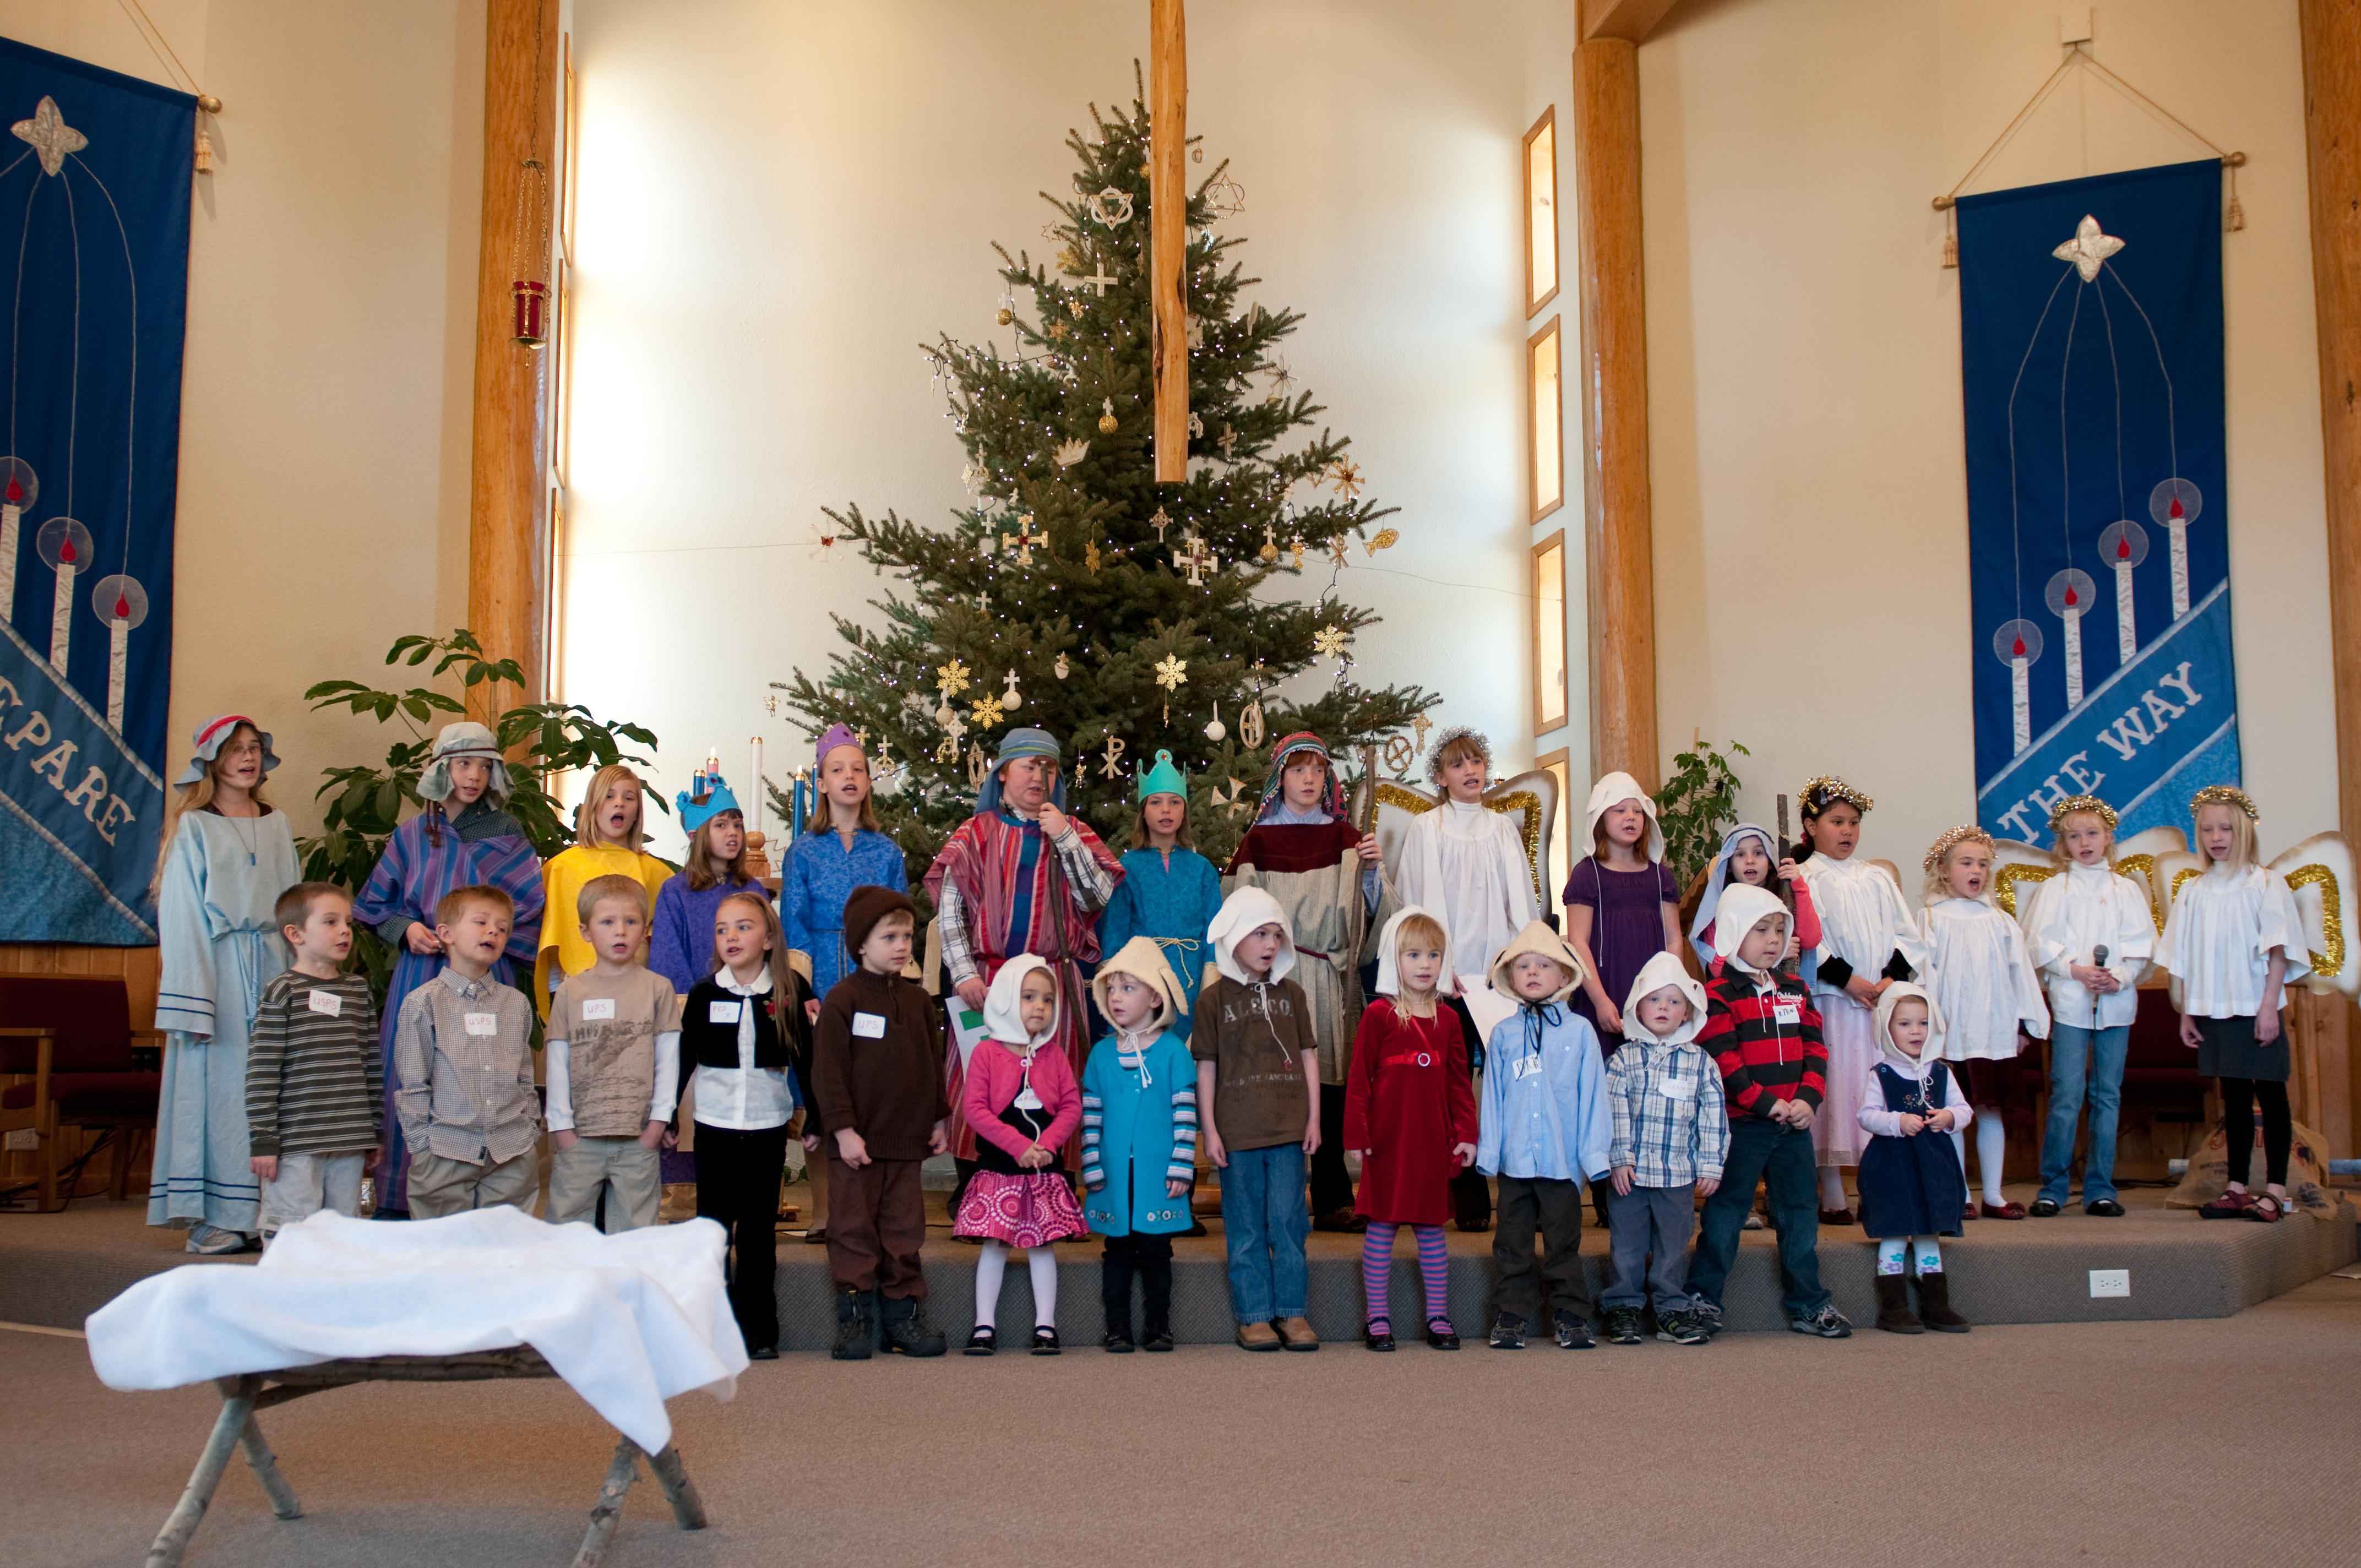 this years sunday school christmas program was no exception except that if anything it went much better than the director led us to believe it would go